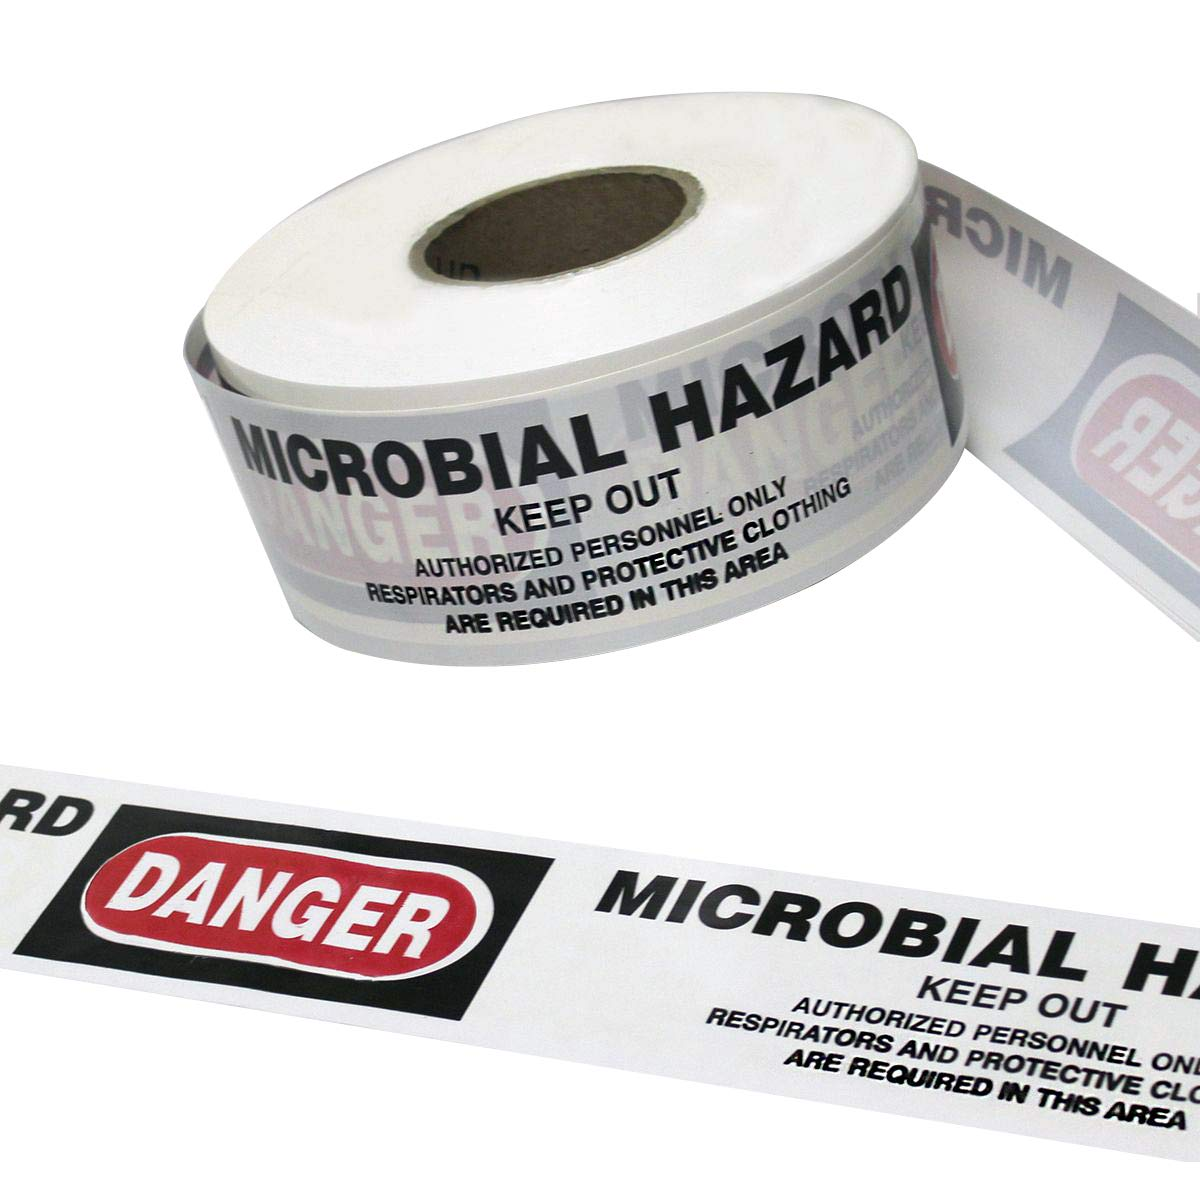 Harris Industries, Inc. BT-44-1000-2mil 3in x 1000ft Danger Microbial Hazard Do Not Enter Barricade Tape